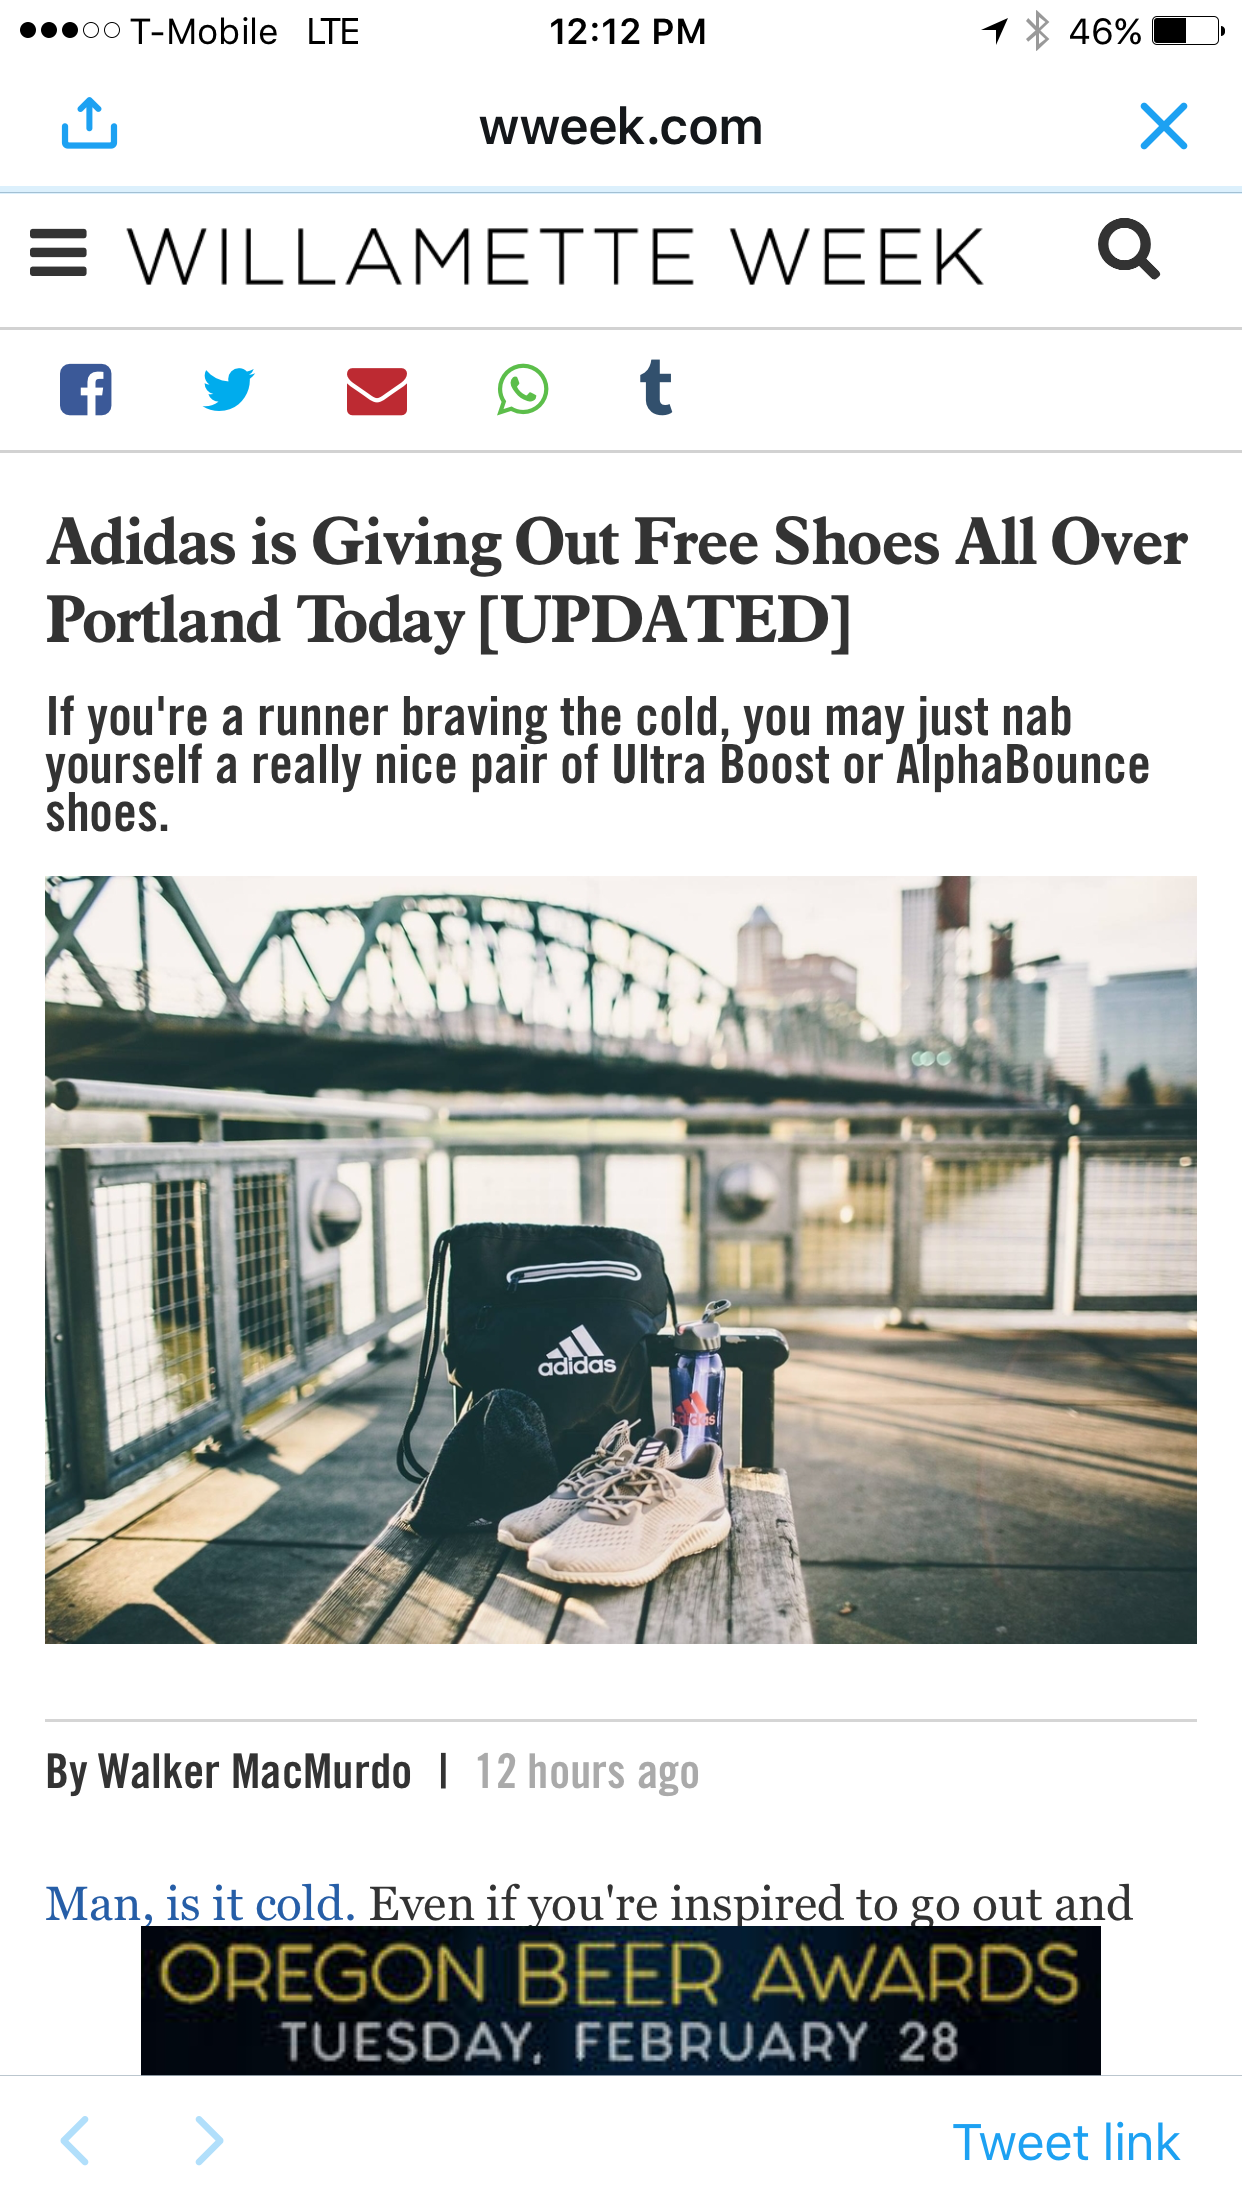 adidas Running in Willamette Weekly:#WhyIRunPortland Campaign - January 2017